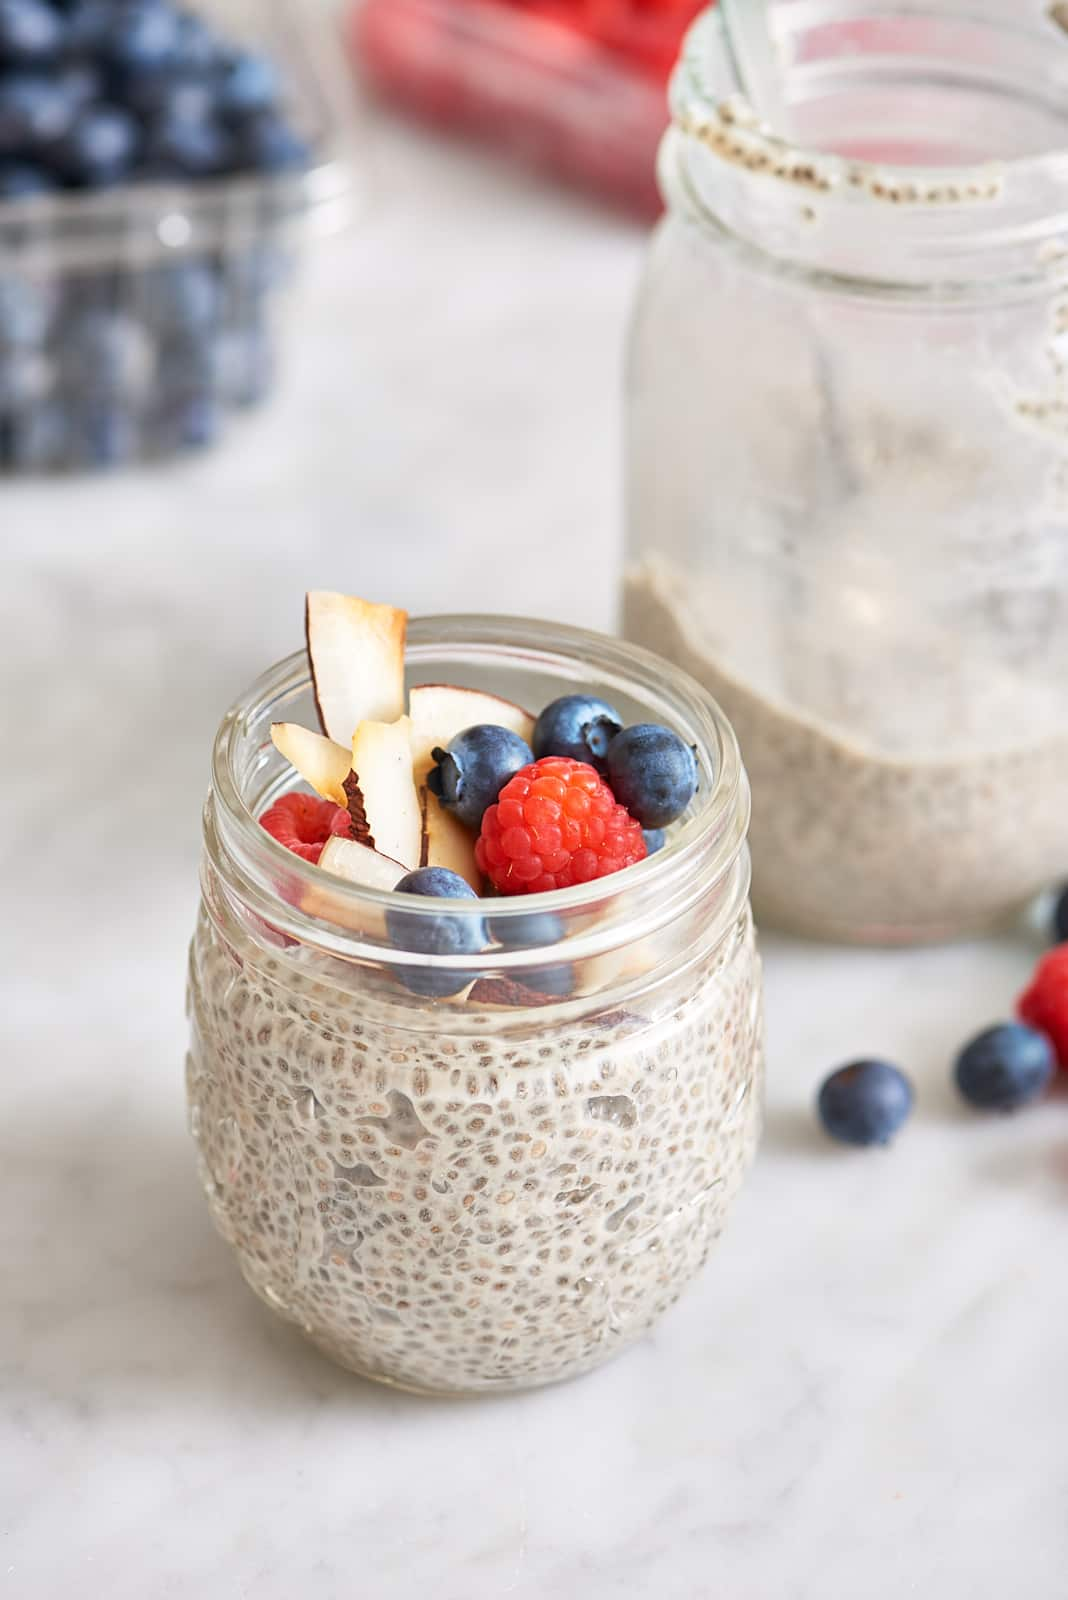 HT Chia Pudding - Beauty - on counter, no jam.